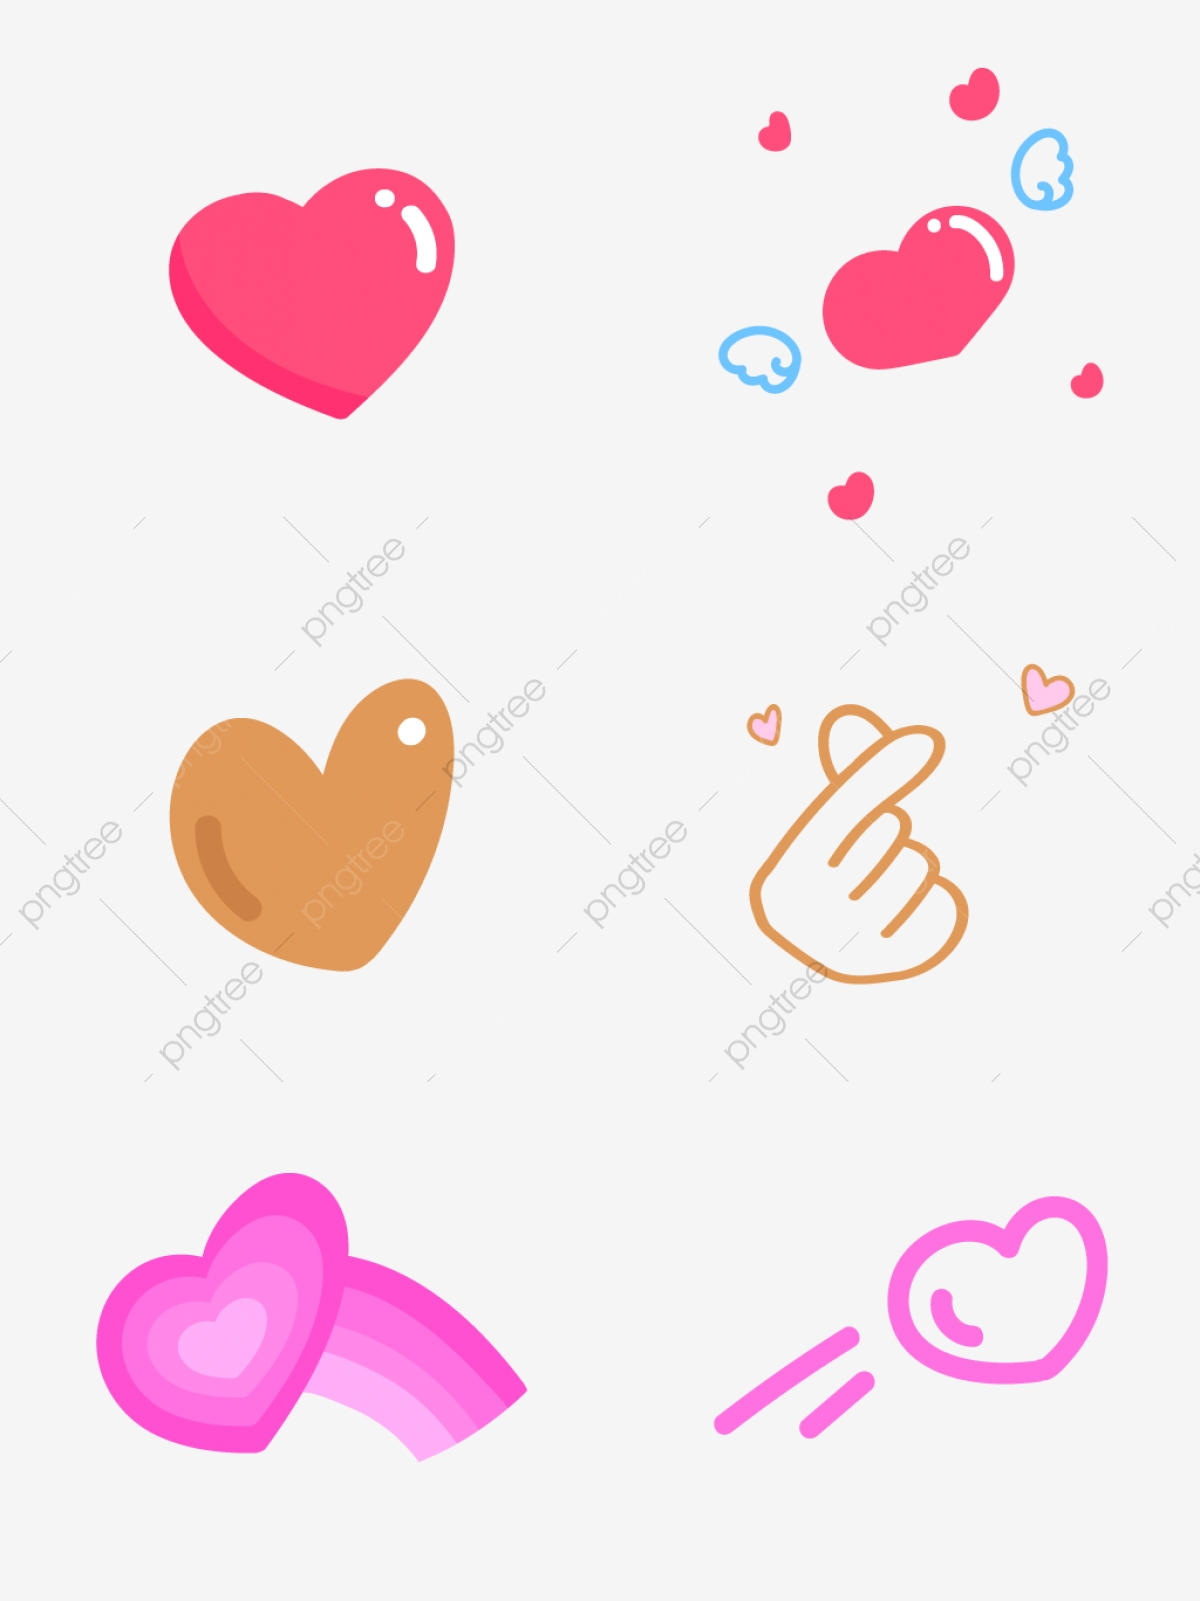 Cartoon Cute Valentine Love Sticker Decorative Element Love Heart Love Elements Png And Vector With Transparent Background For Free Download